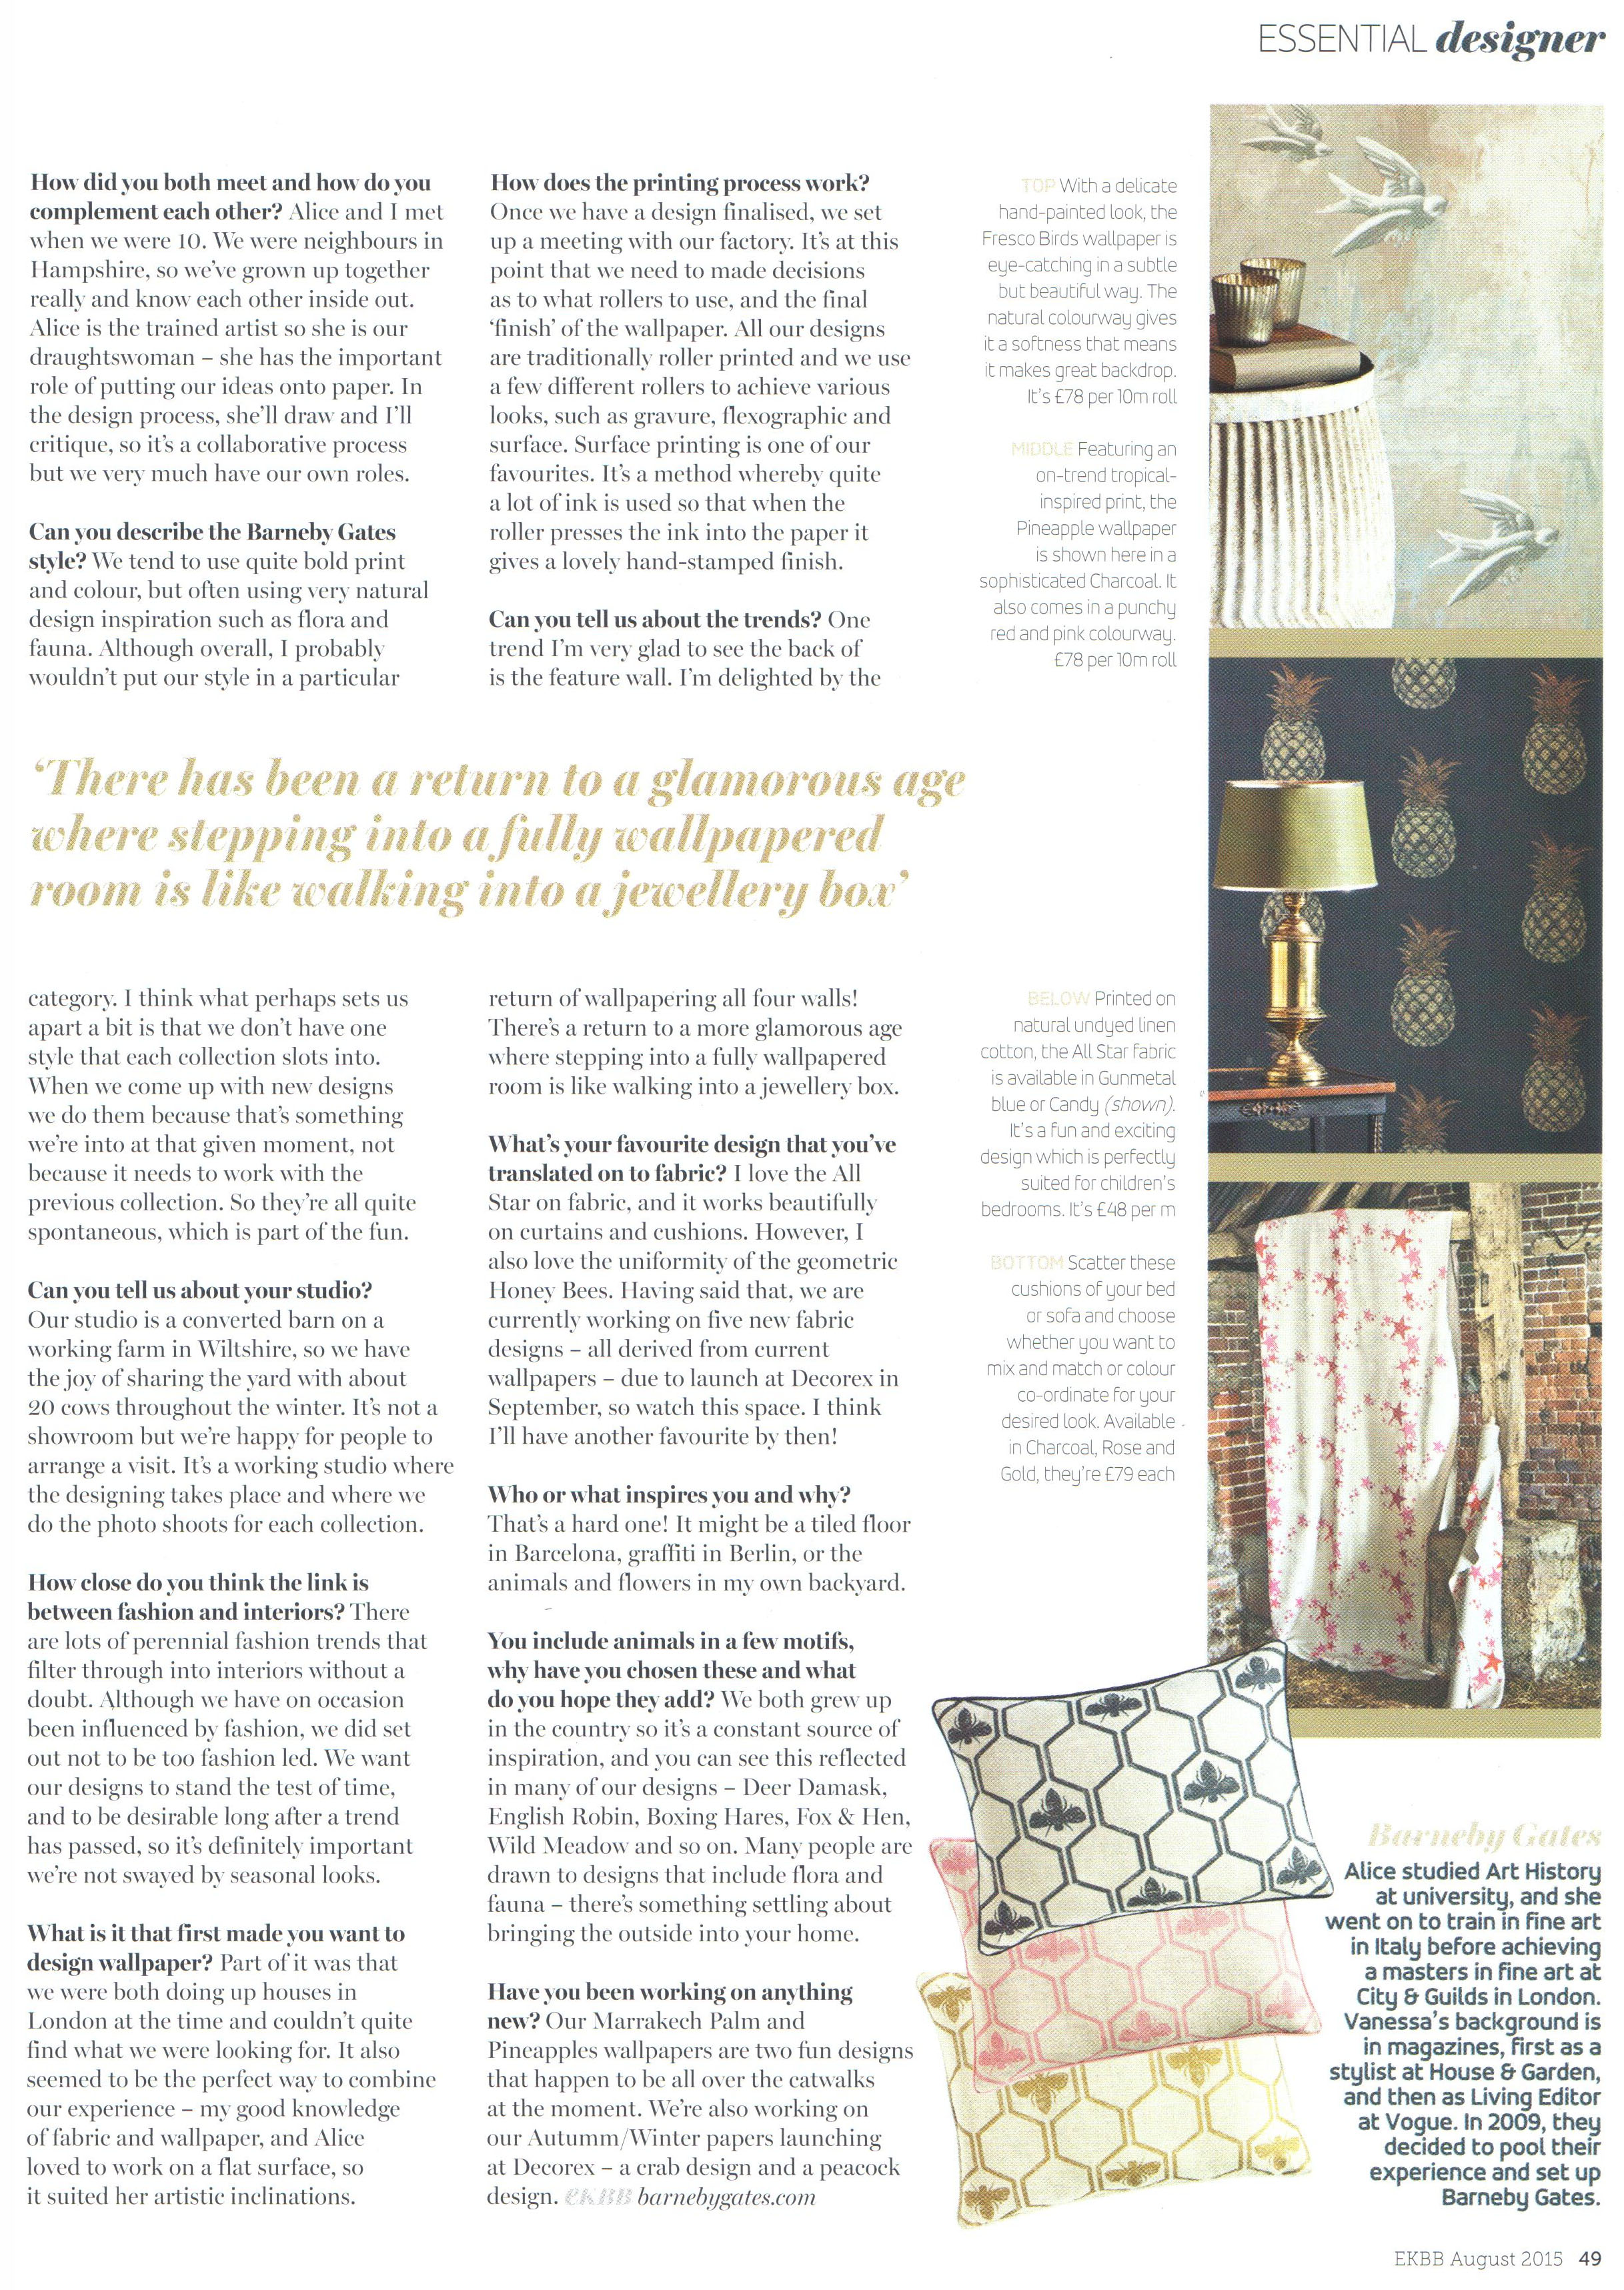 Essential Kitchen, Bathroom, Bedroom - Article 2 - Aug 2015